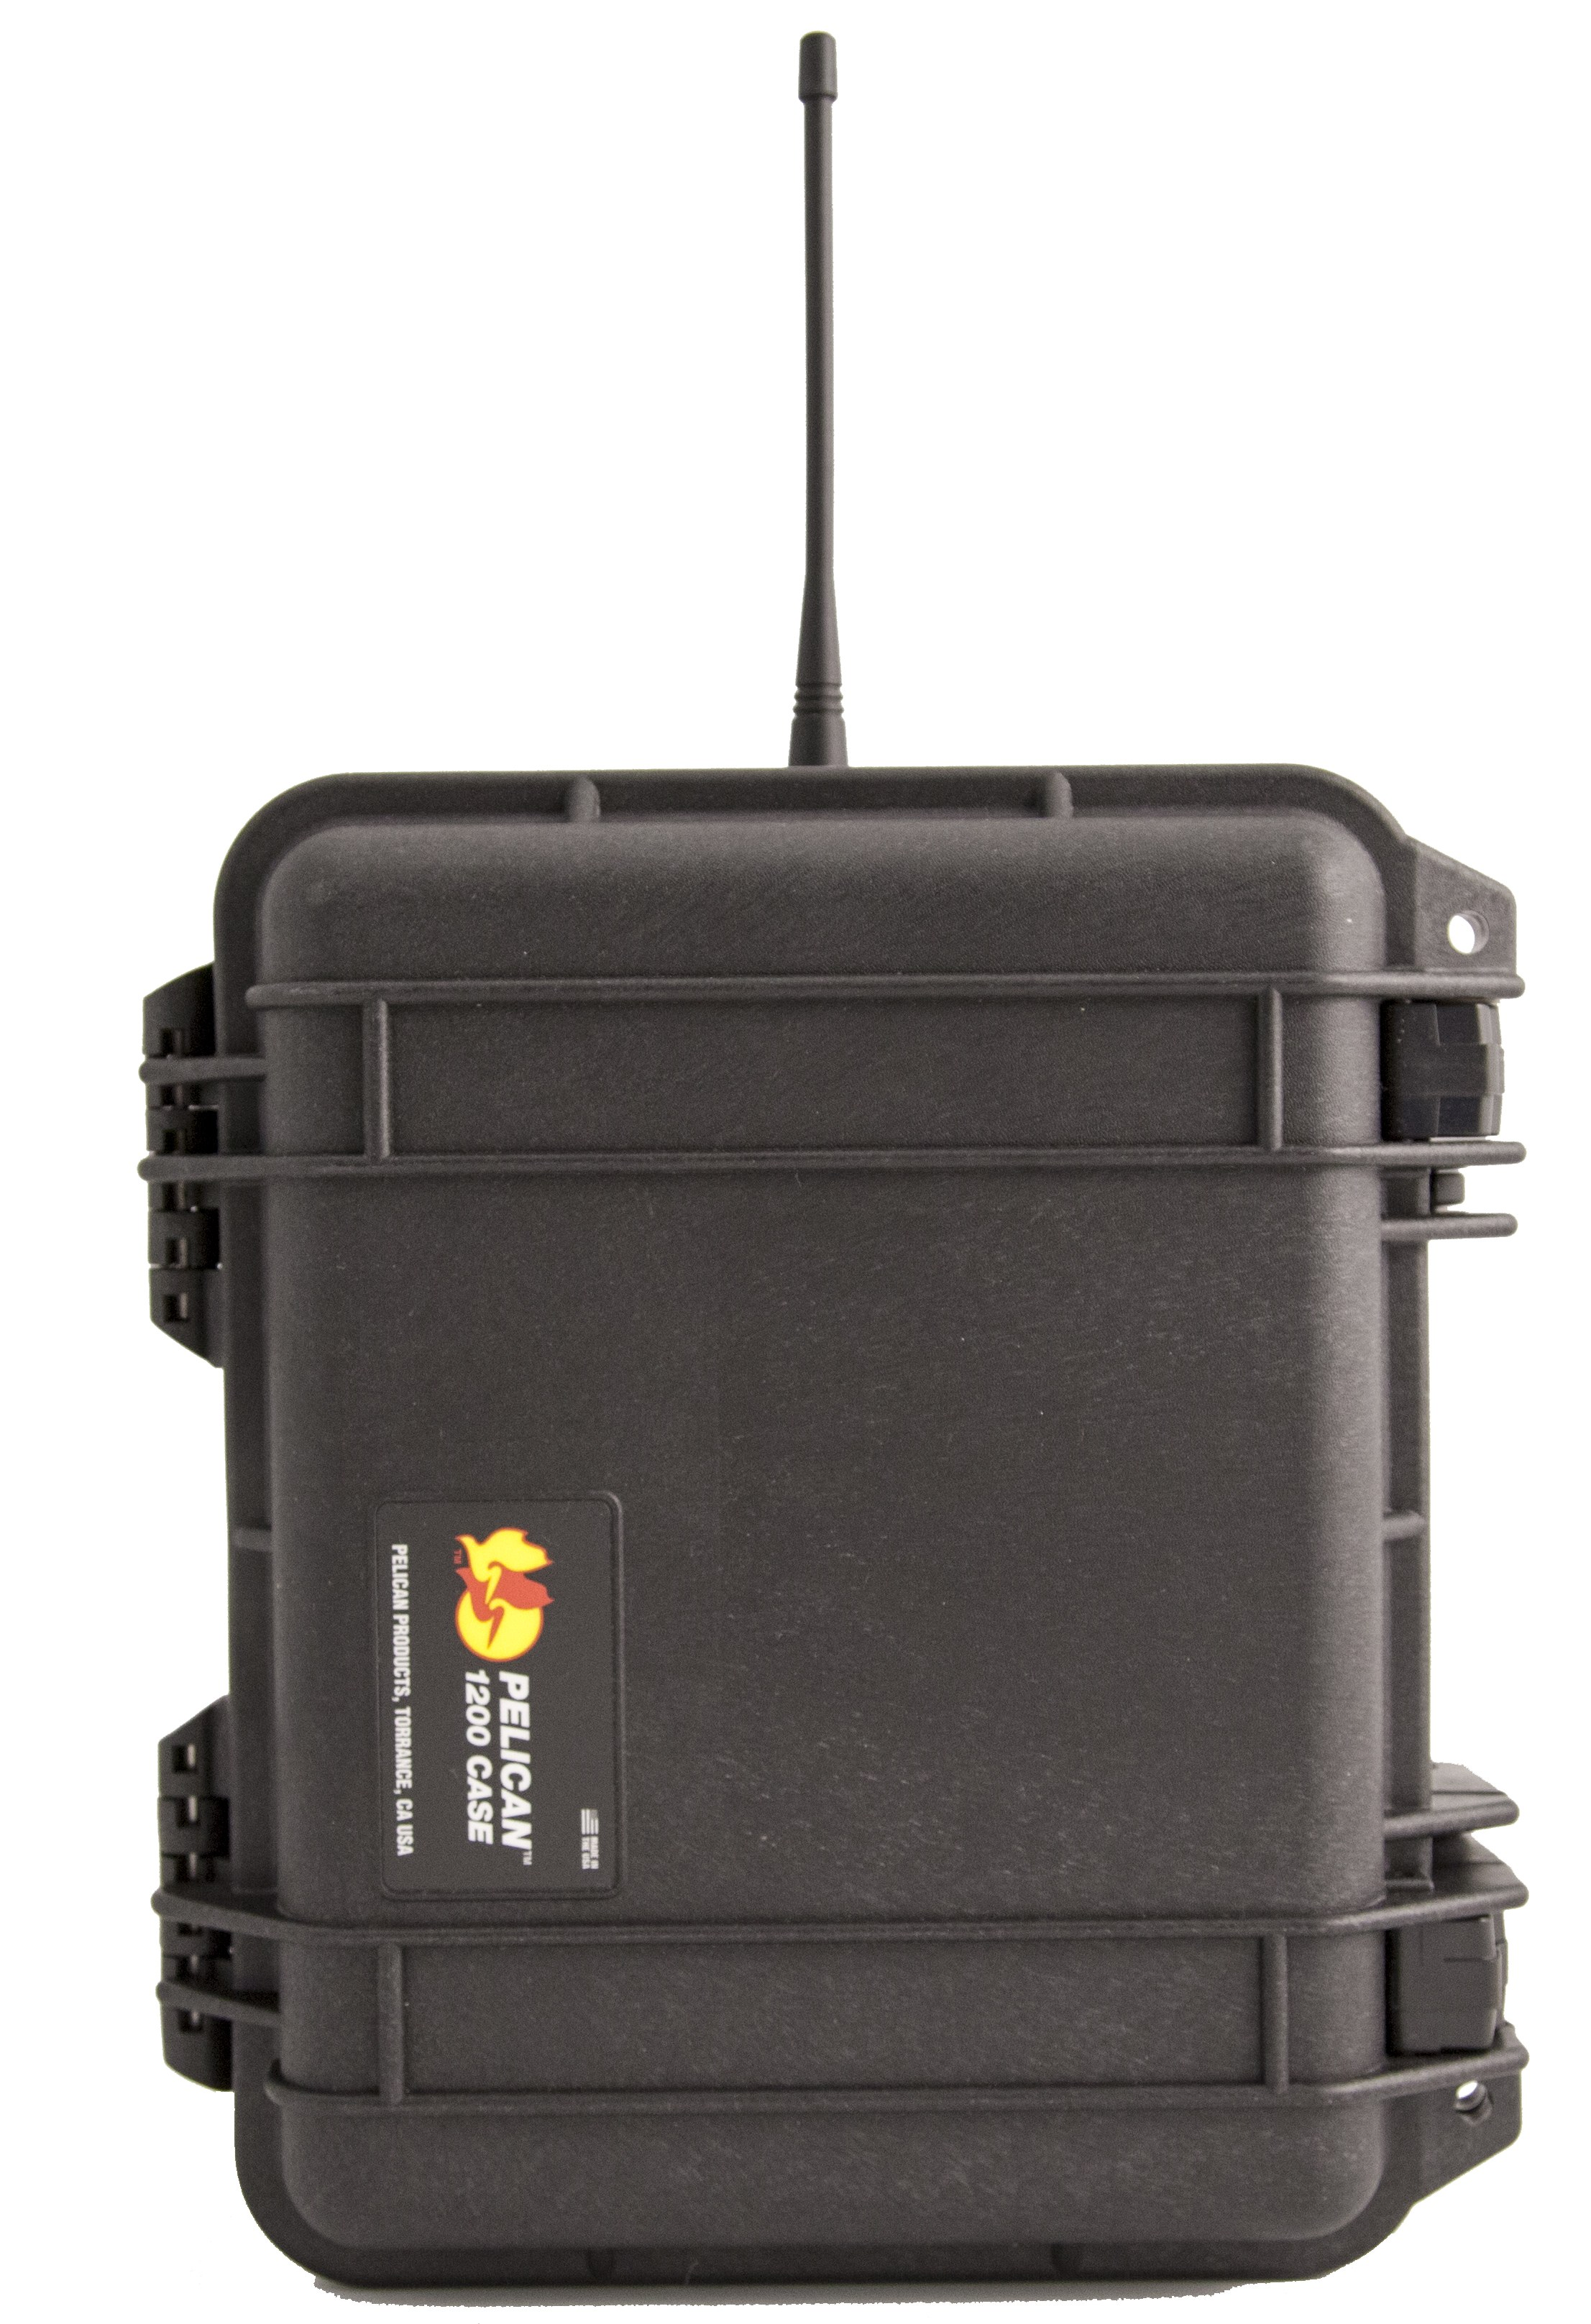 UHF 10-45 Mobile Repeater